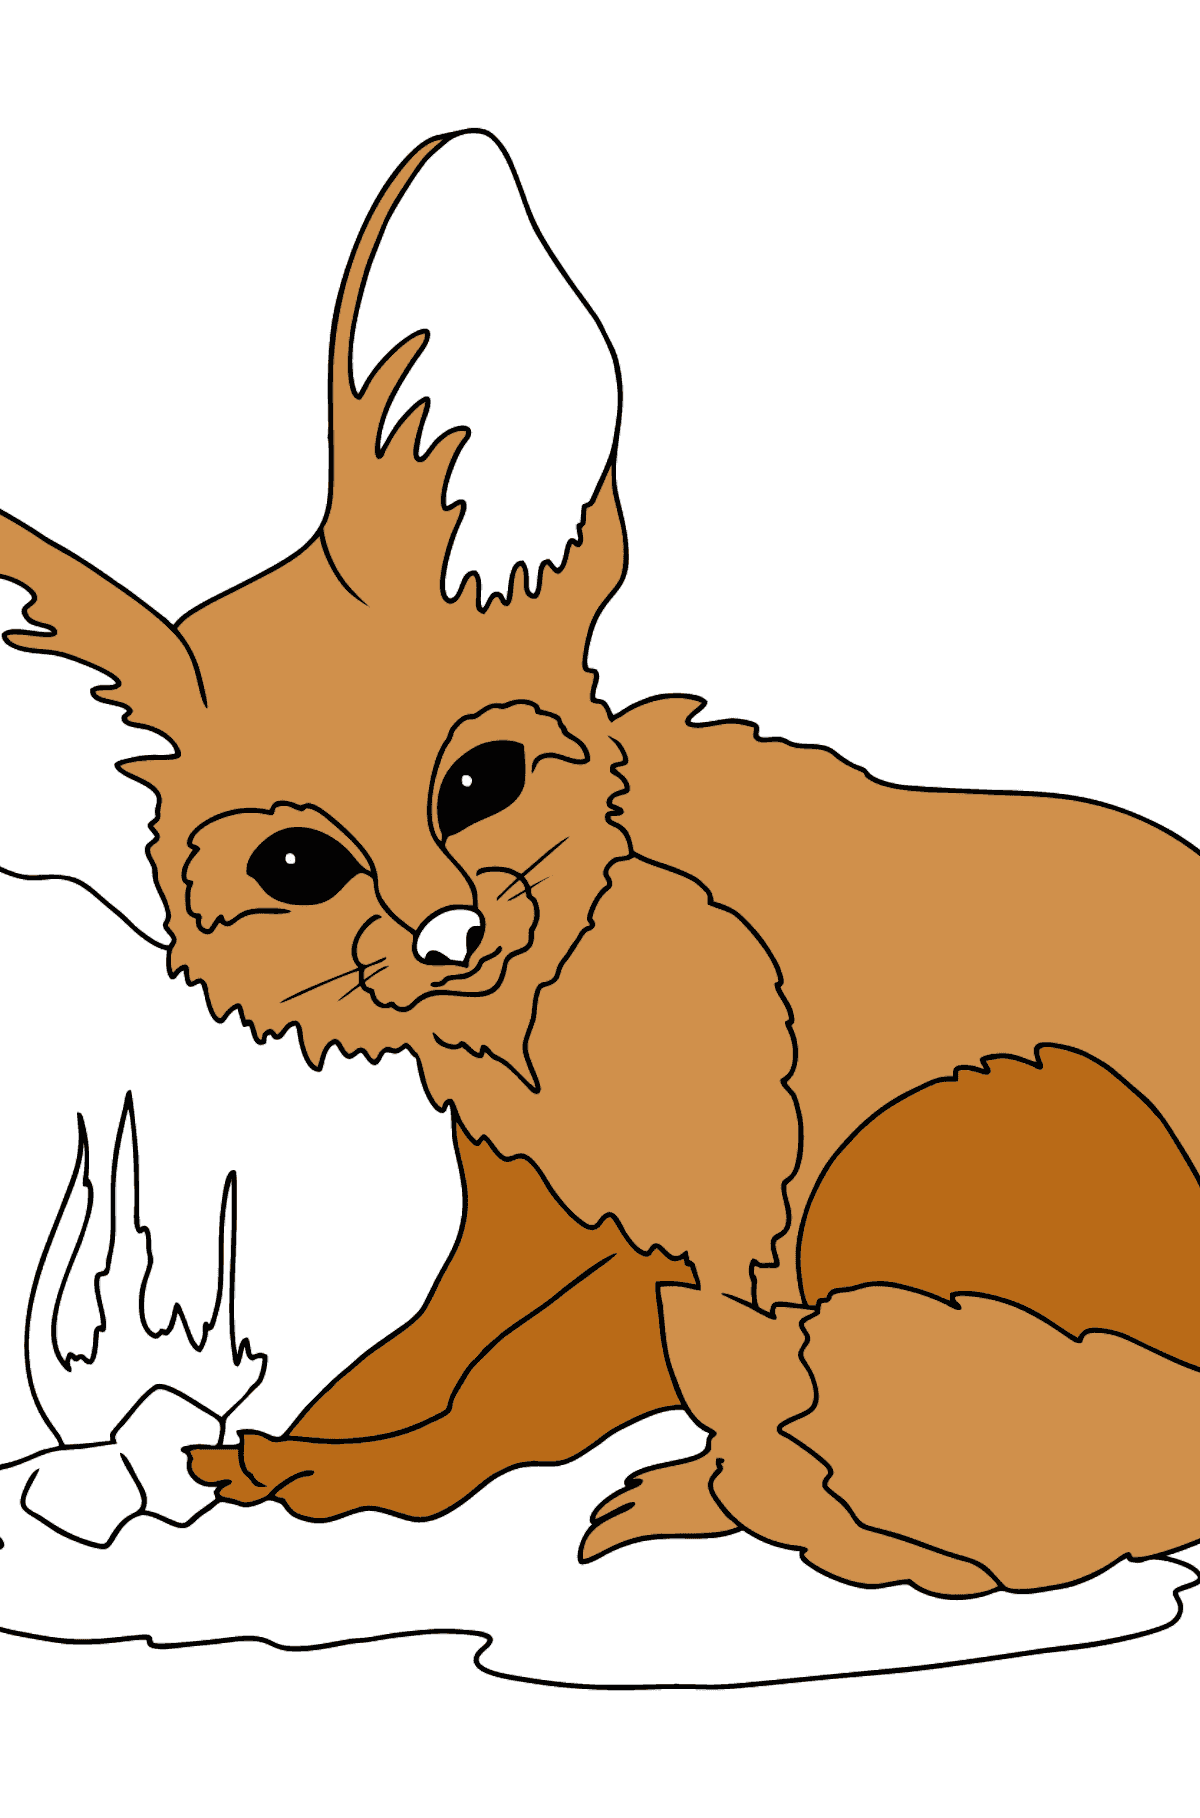 A Fennec Fox with Big Ears Coloring Page - Coloring Pages for Kids